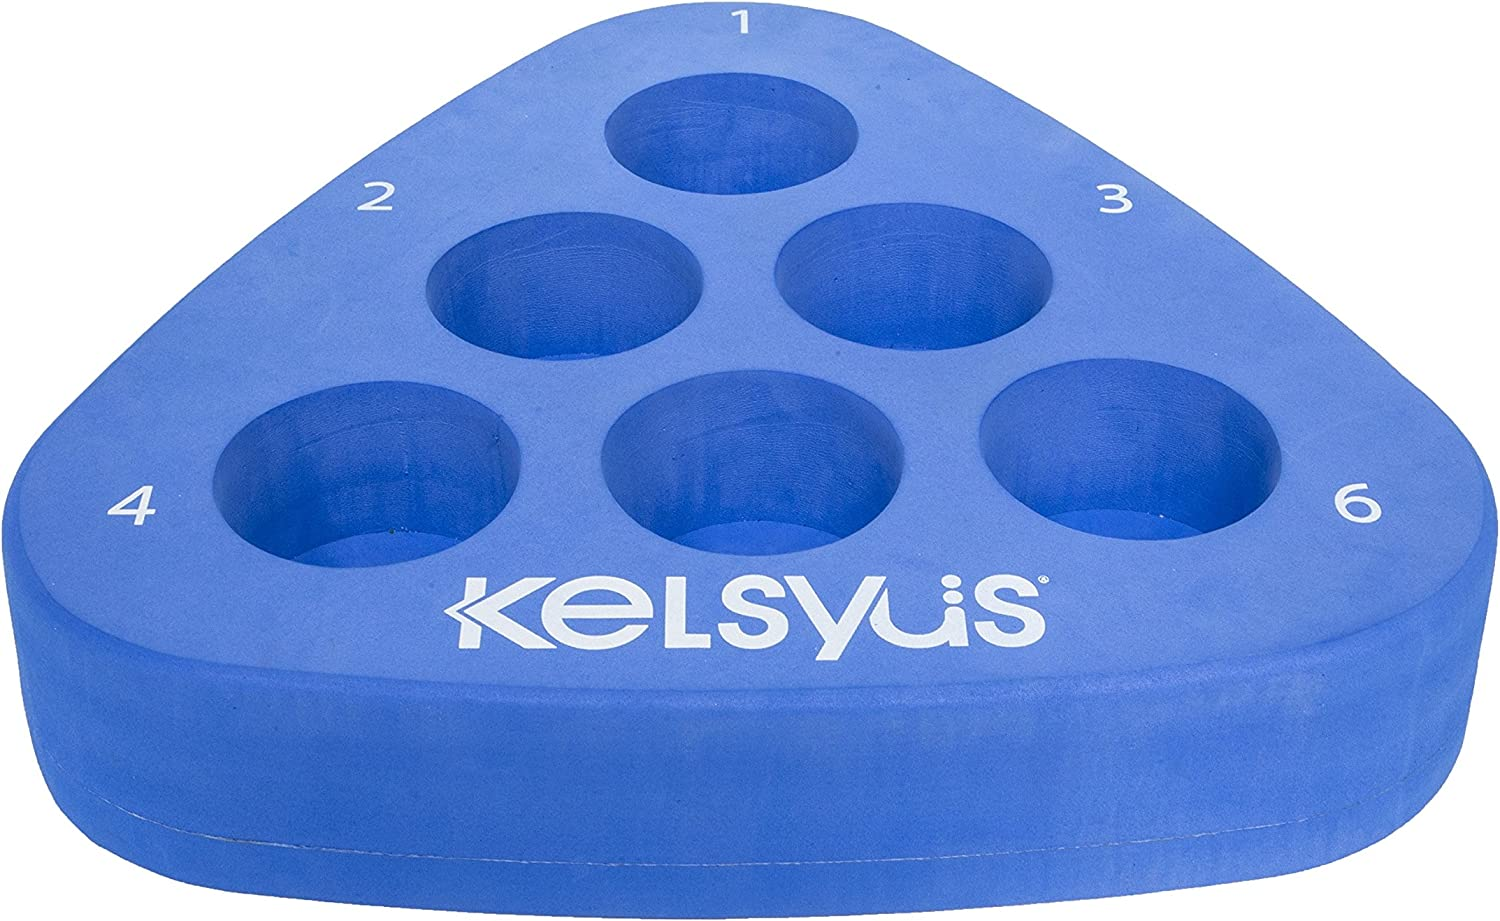 SwimWays Premium Floating Swimming New item Pool Hold Drink Fresno Mall Pong Game and